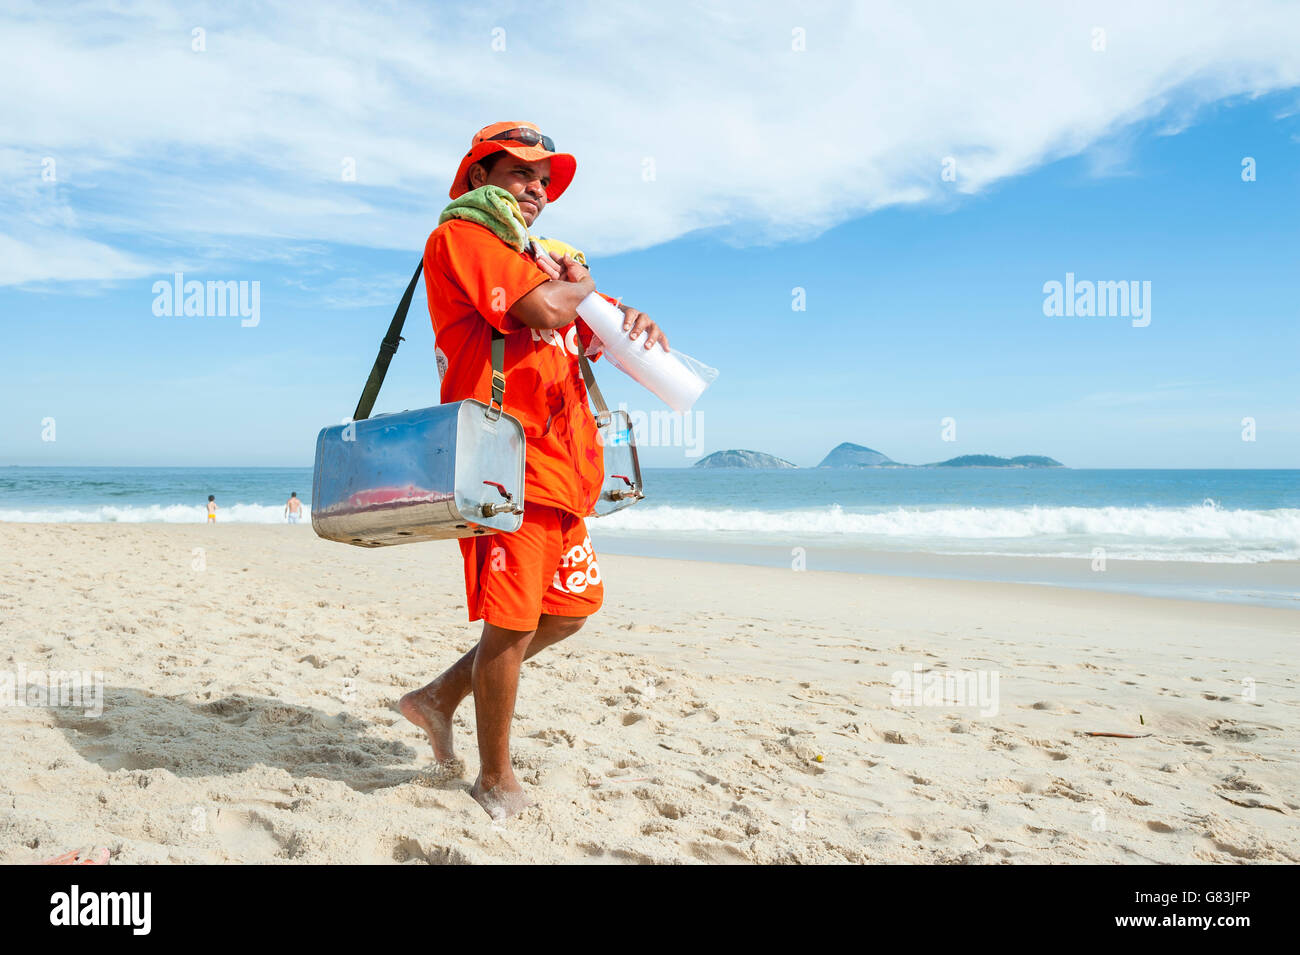 RIO DE JANEIRO, BRAZIL - MARCH 15, 2015: Brazilian beach vendor selling South American mate tea walks on Ipanema - Stock Image